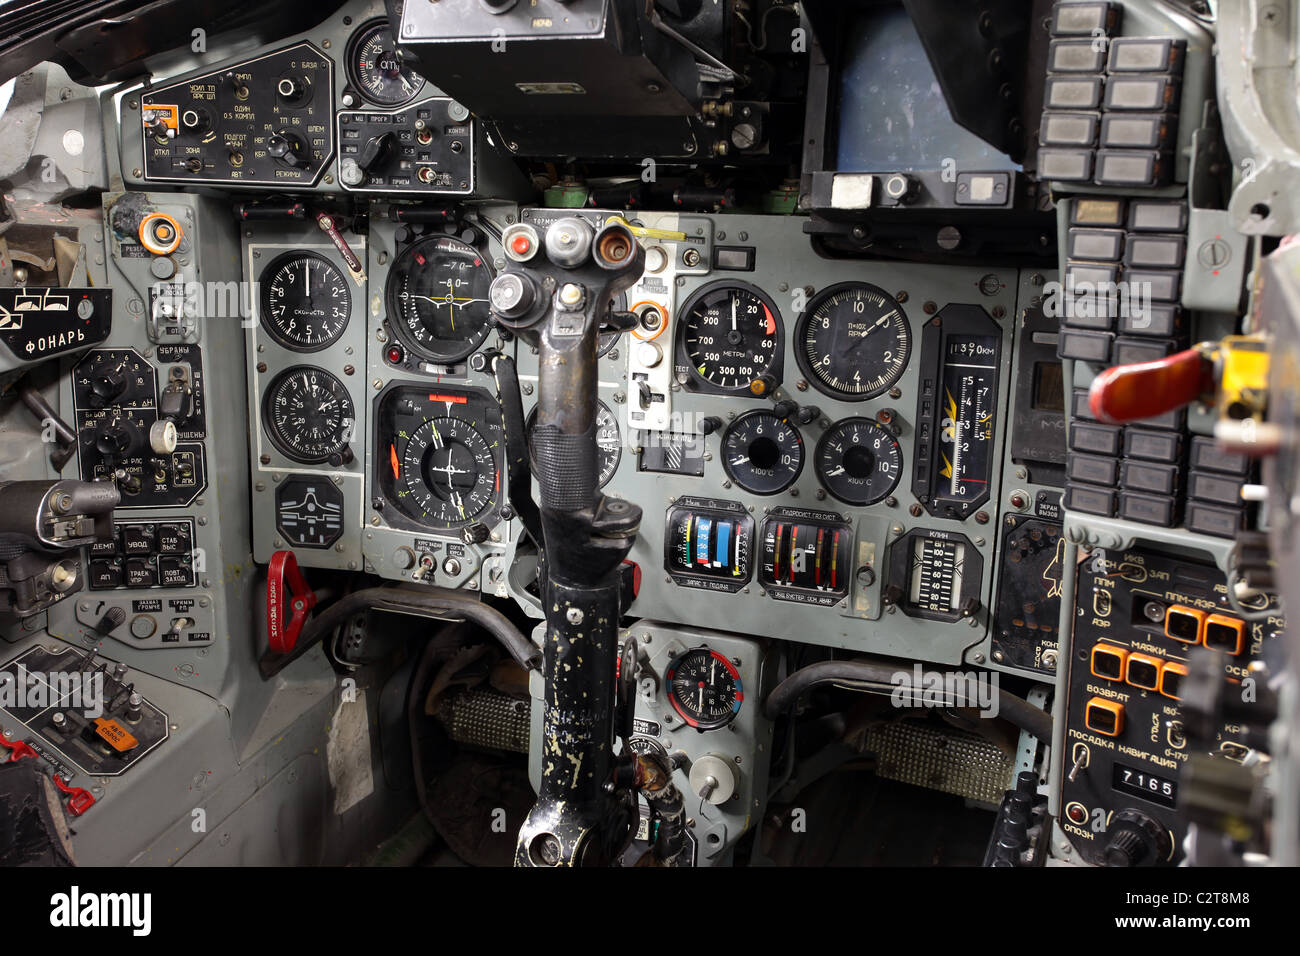 Cockpit and instrument panel of a captured Soviet Mig 29 Fulcrum